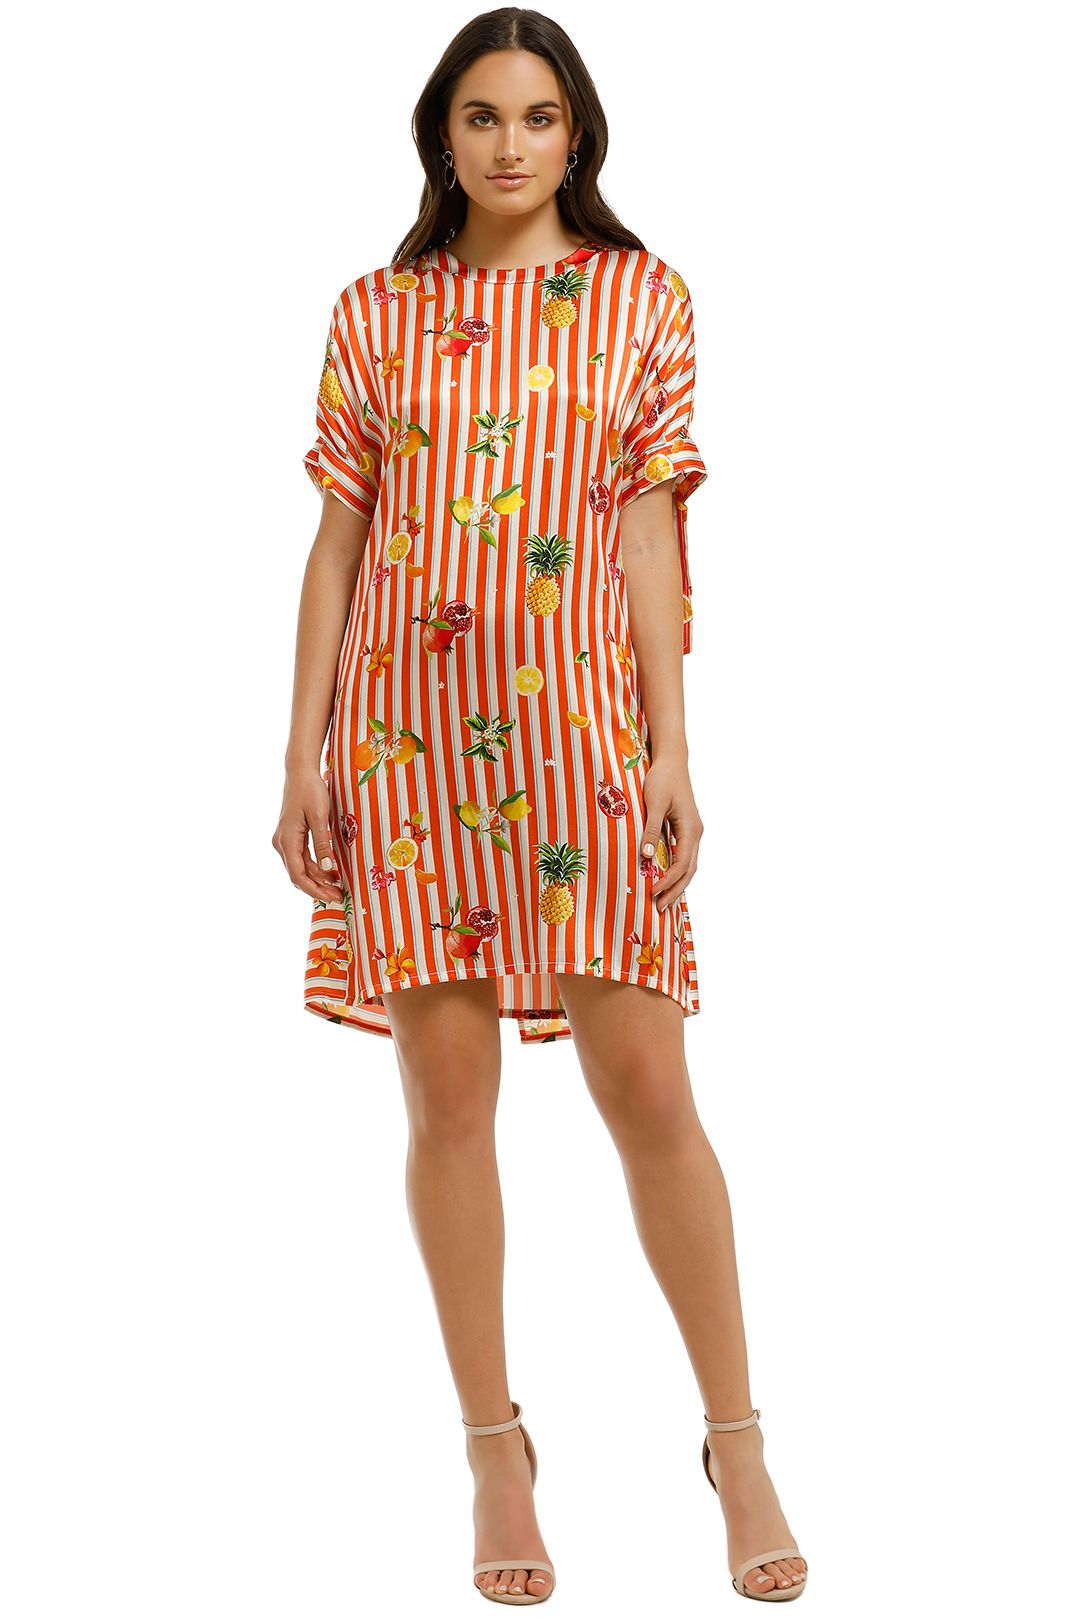 Cooper-By-Trelise-Cooper-Sunset-Shift-Dress-Orange-Stripe-Front